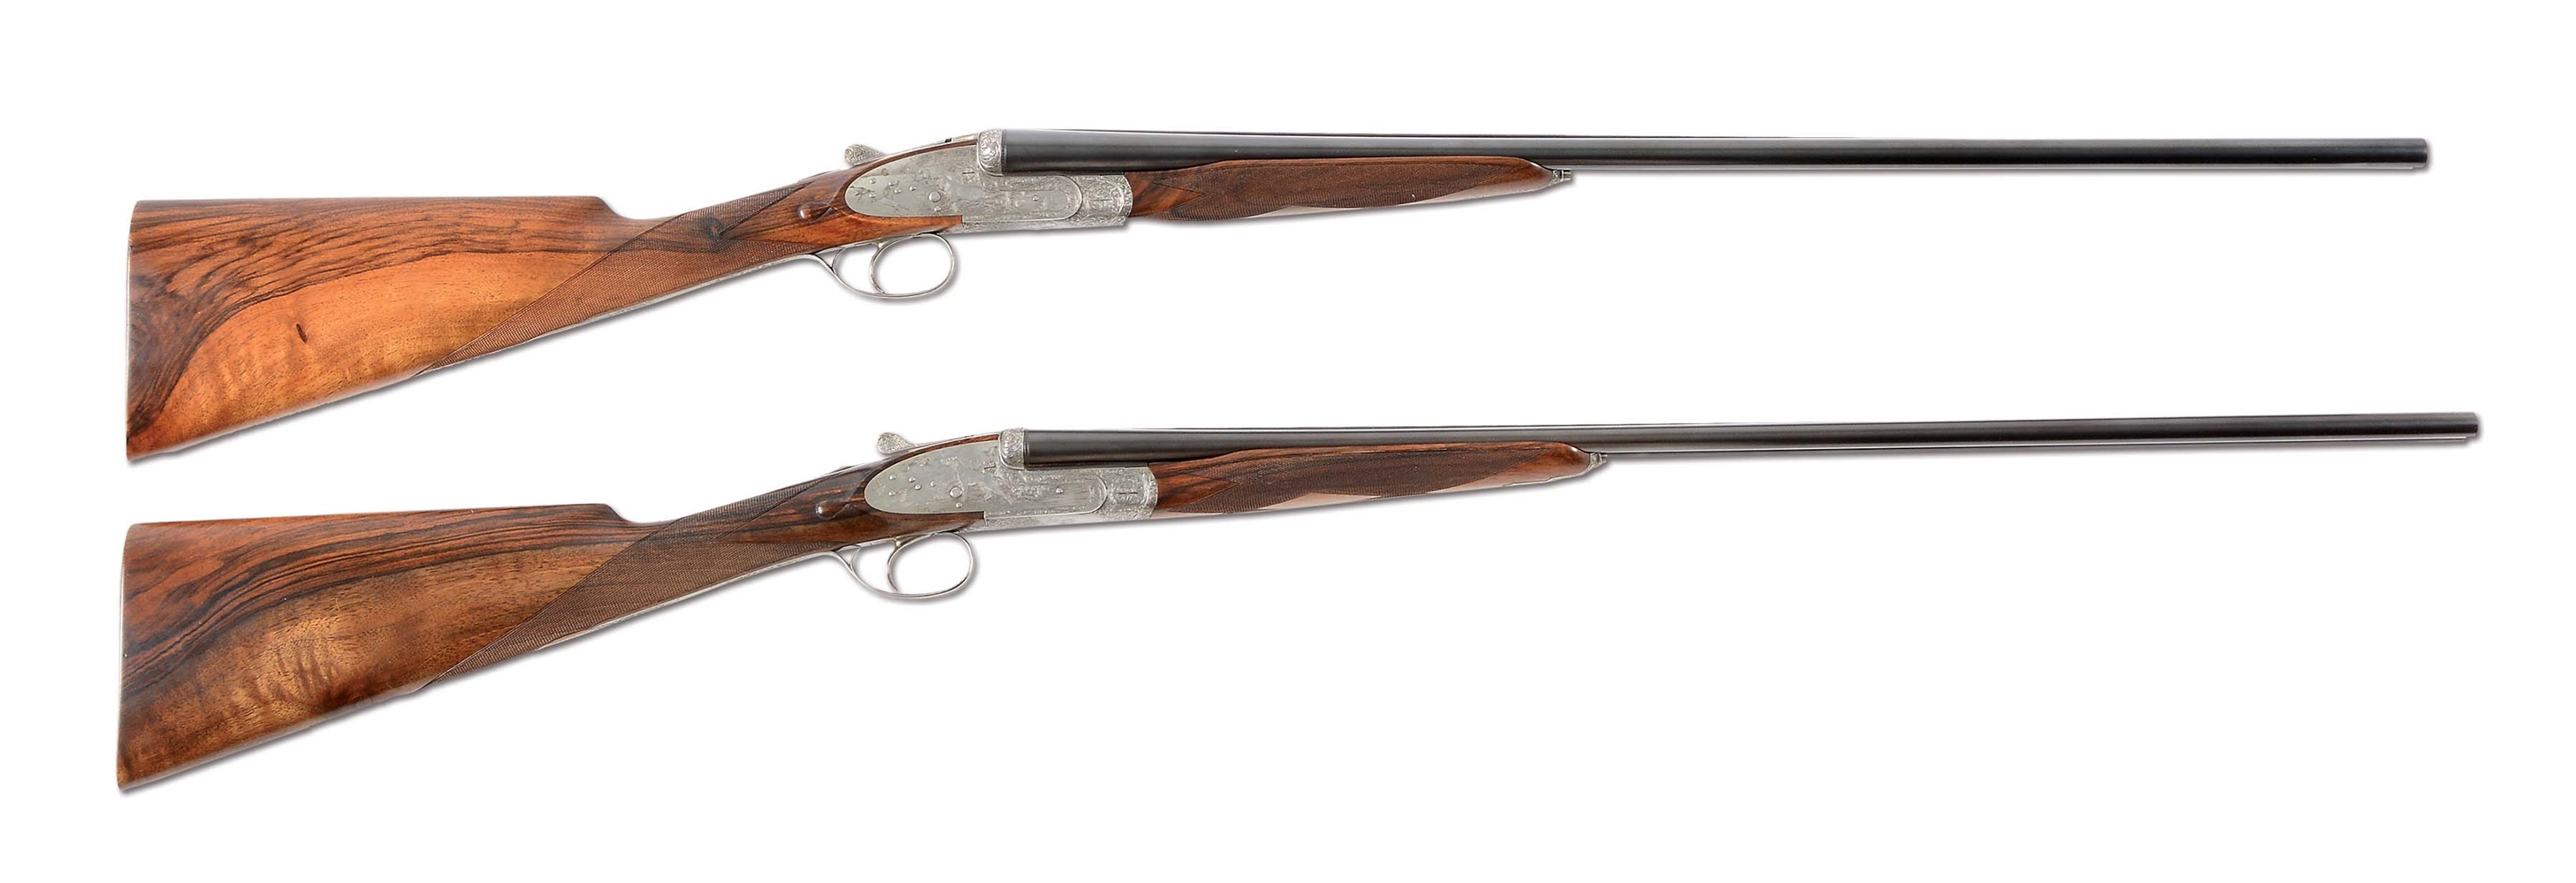 (M) SENSATIONAL BRACE OF FAMARS VENERI SIDELOCK EJECTOR, SINGLE TRIGGER SHOTGUNS - A 28 GAUGE AND A 410 GAUGE SET WITH SUPERB SHADED SCROLL AND LIFELIKE DOG AND BIRD SCENES BY G. M. CARGNEL (1975).